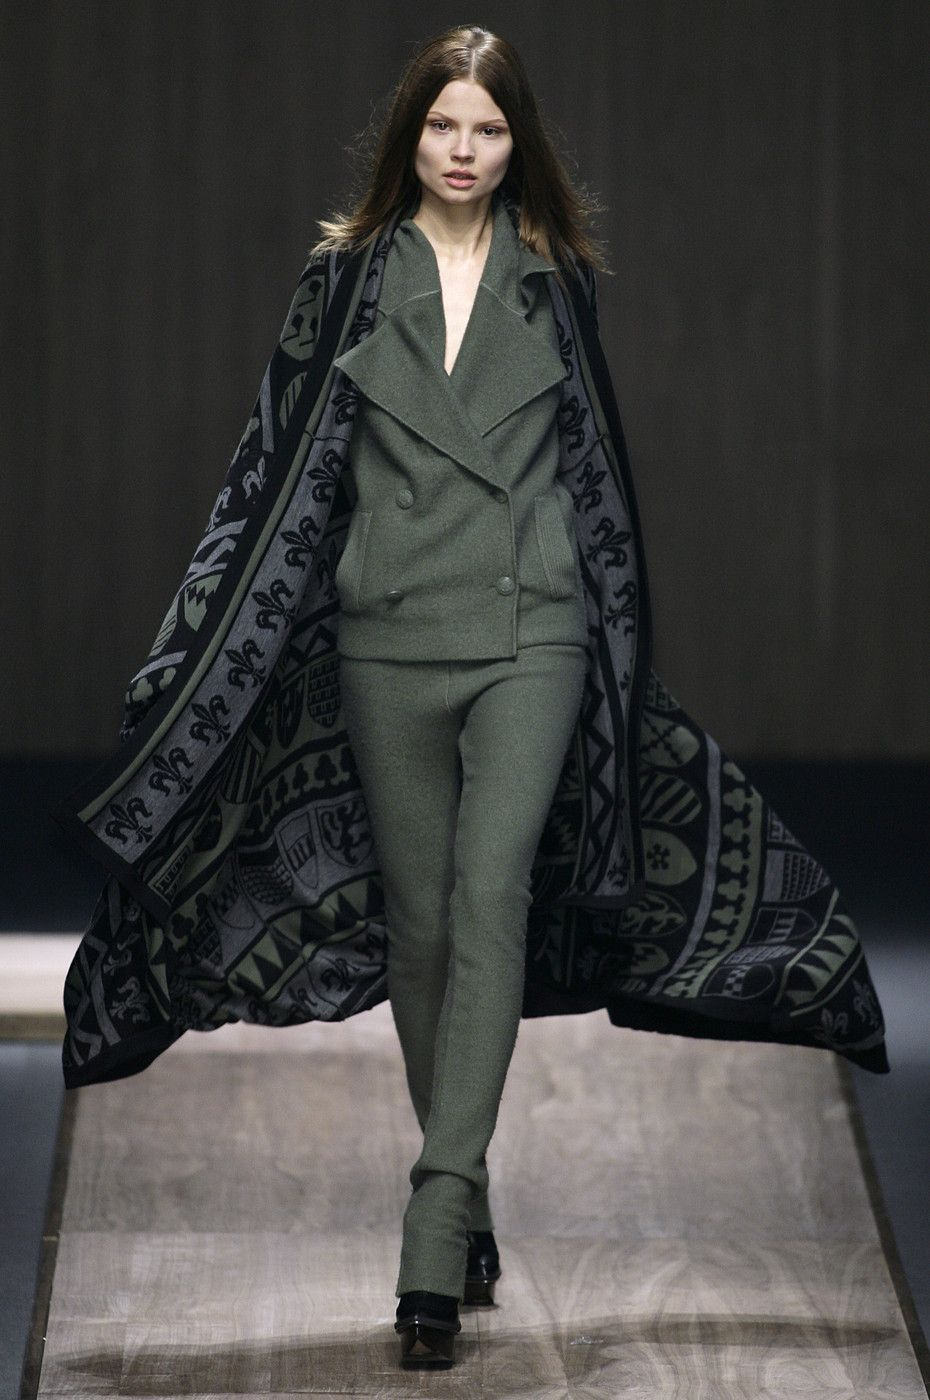 Stella+McCartney+Fall+2008+Cg3wH6a7oWMx.jpg (930×1400)